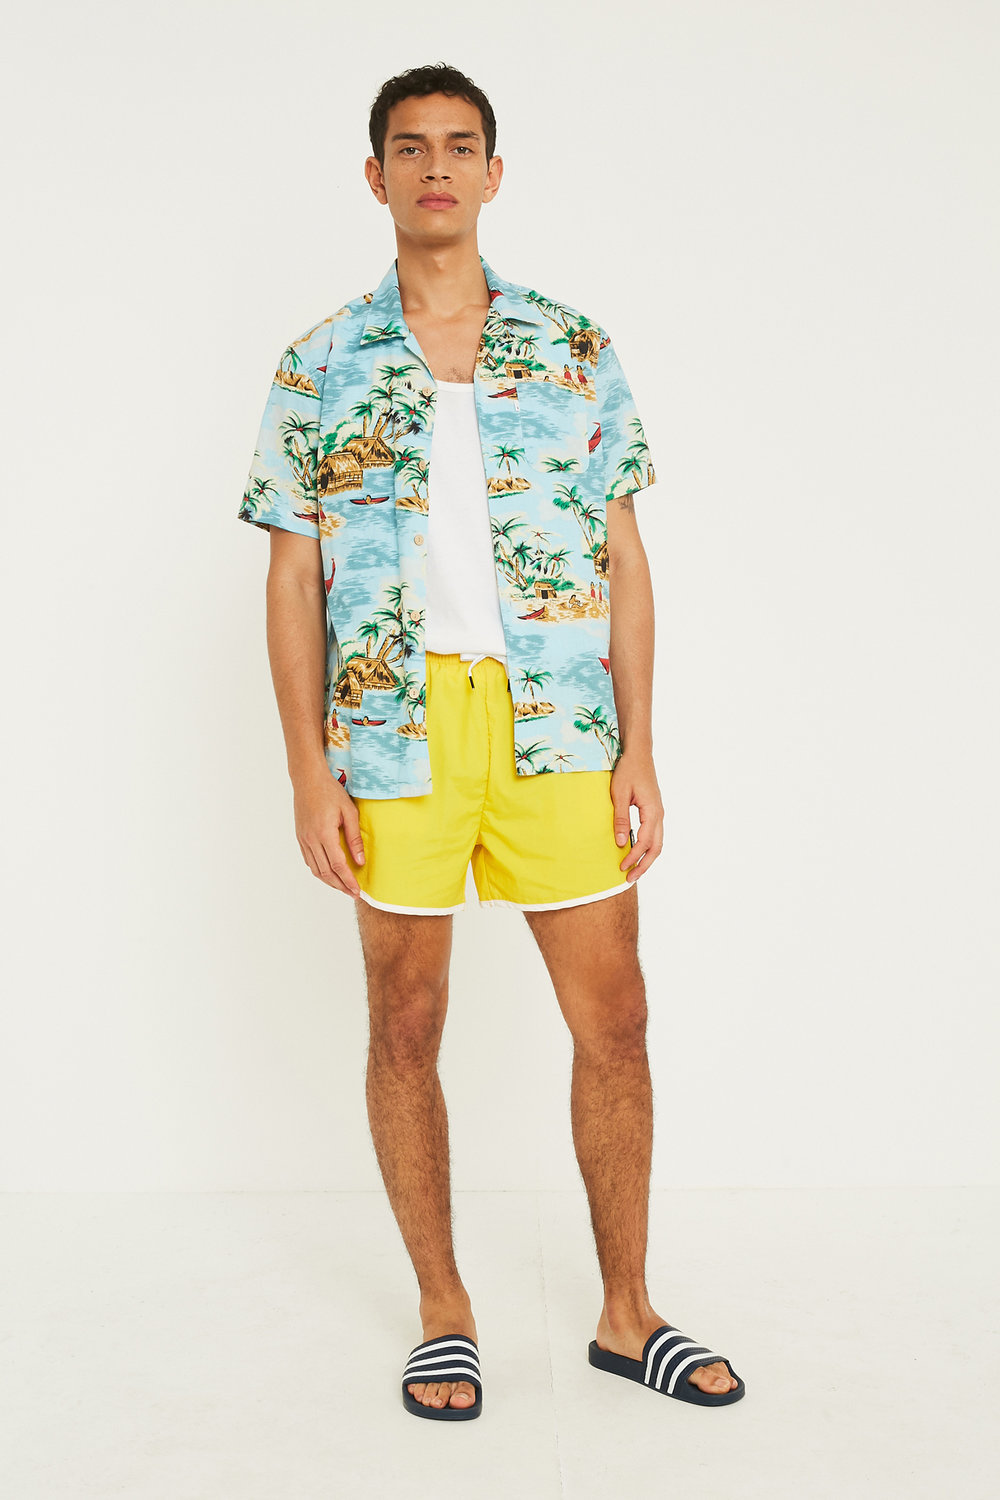 Kappa swim shorts at Urban Outfitters £35 or €52 (2).jpg